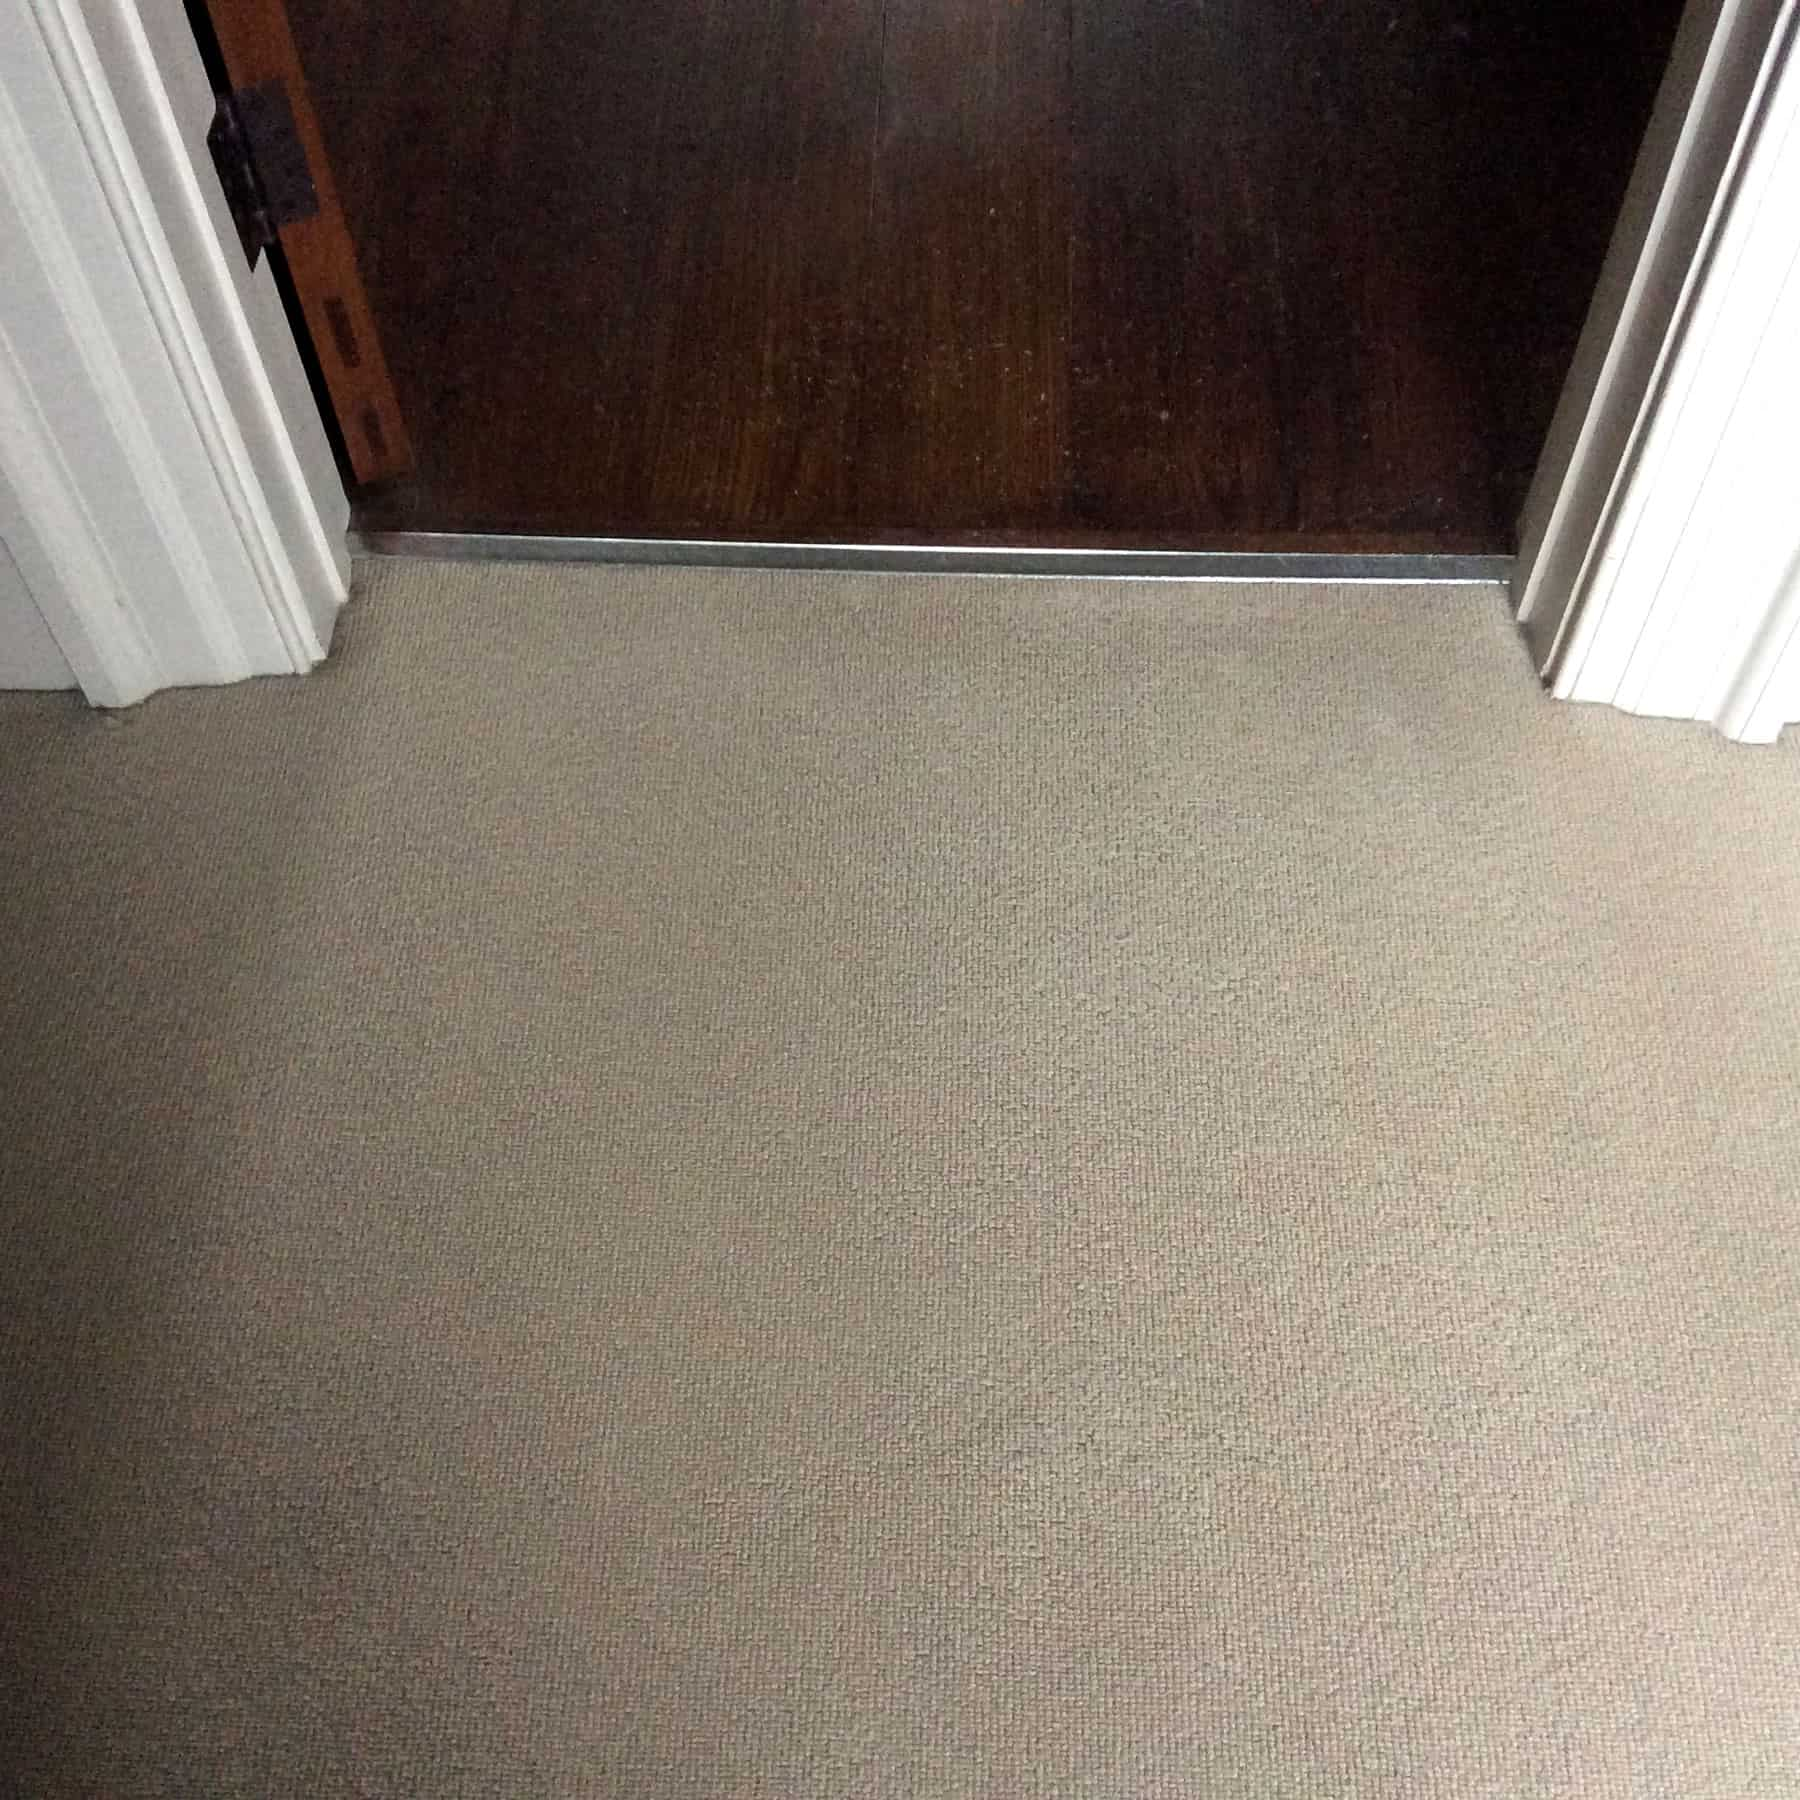 Carpet rust stain removal after